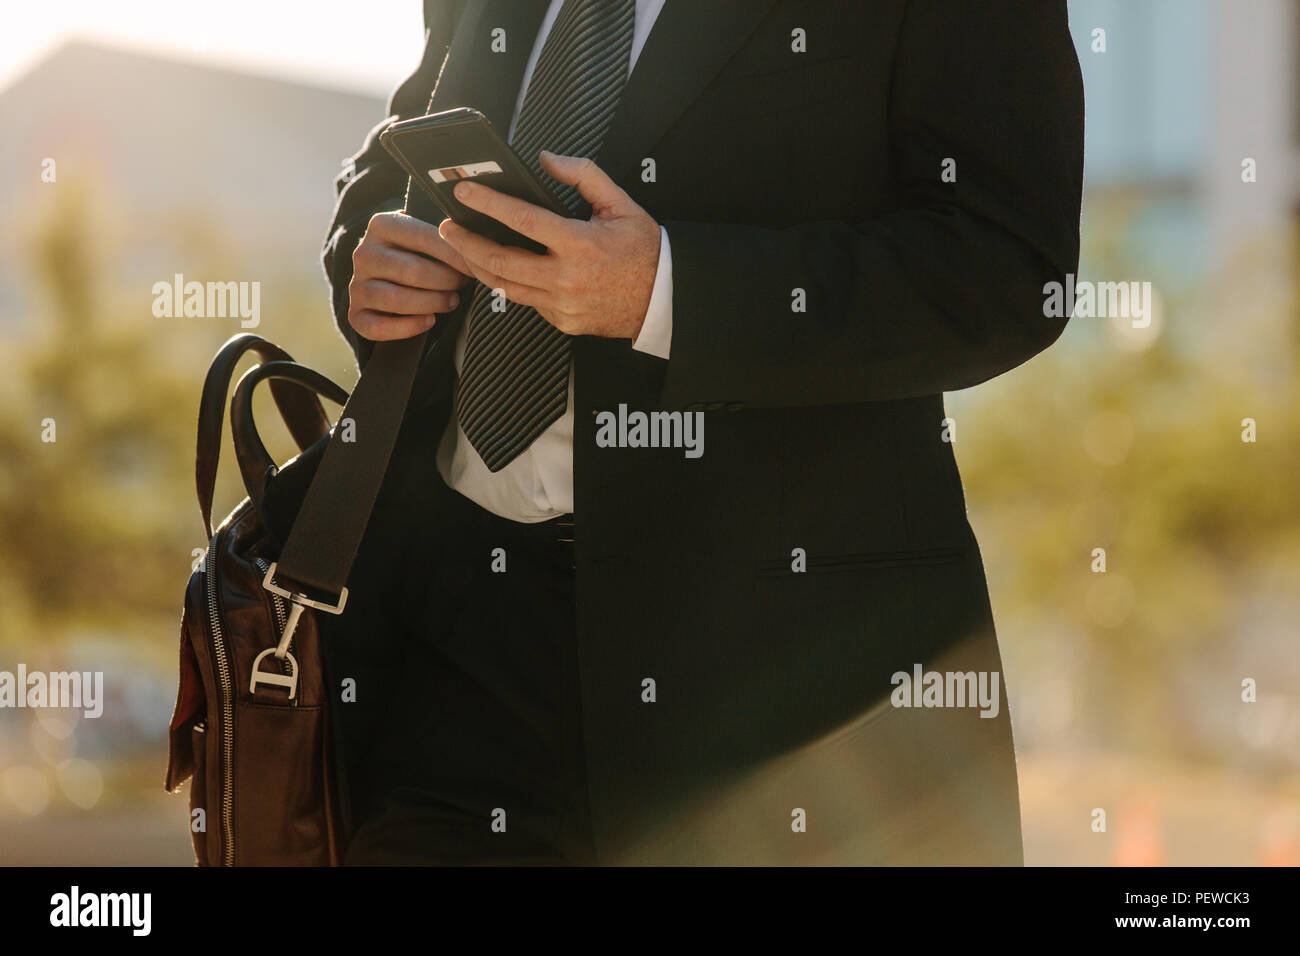 Mid section of a man in formal clothes using his mobile phone while commuting to office. Busy office going man walking on street and using his mobile  - Stock Image